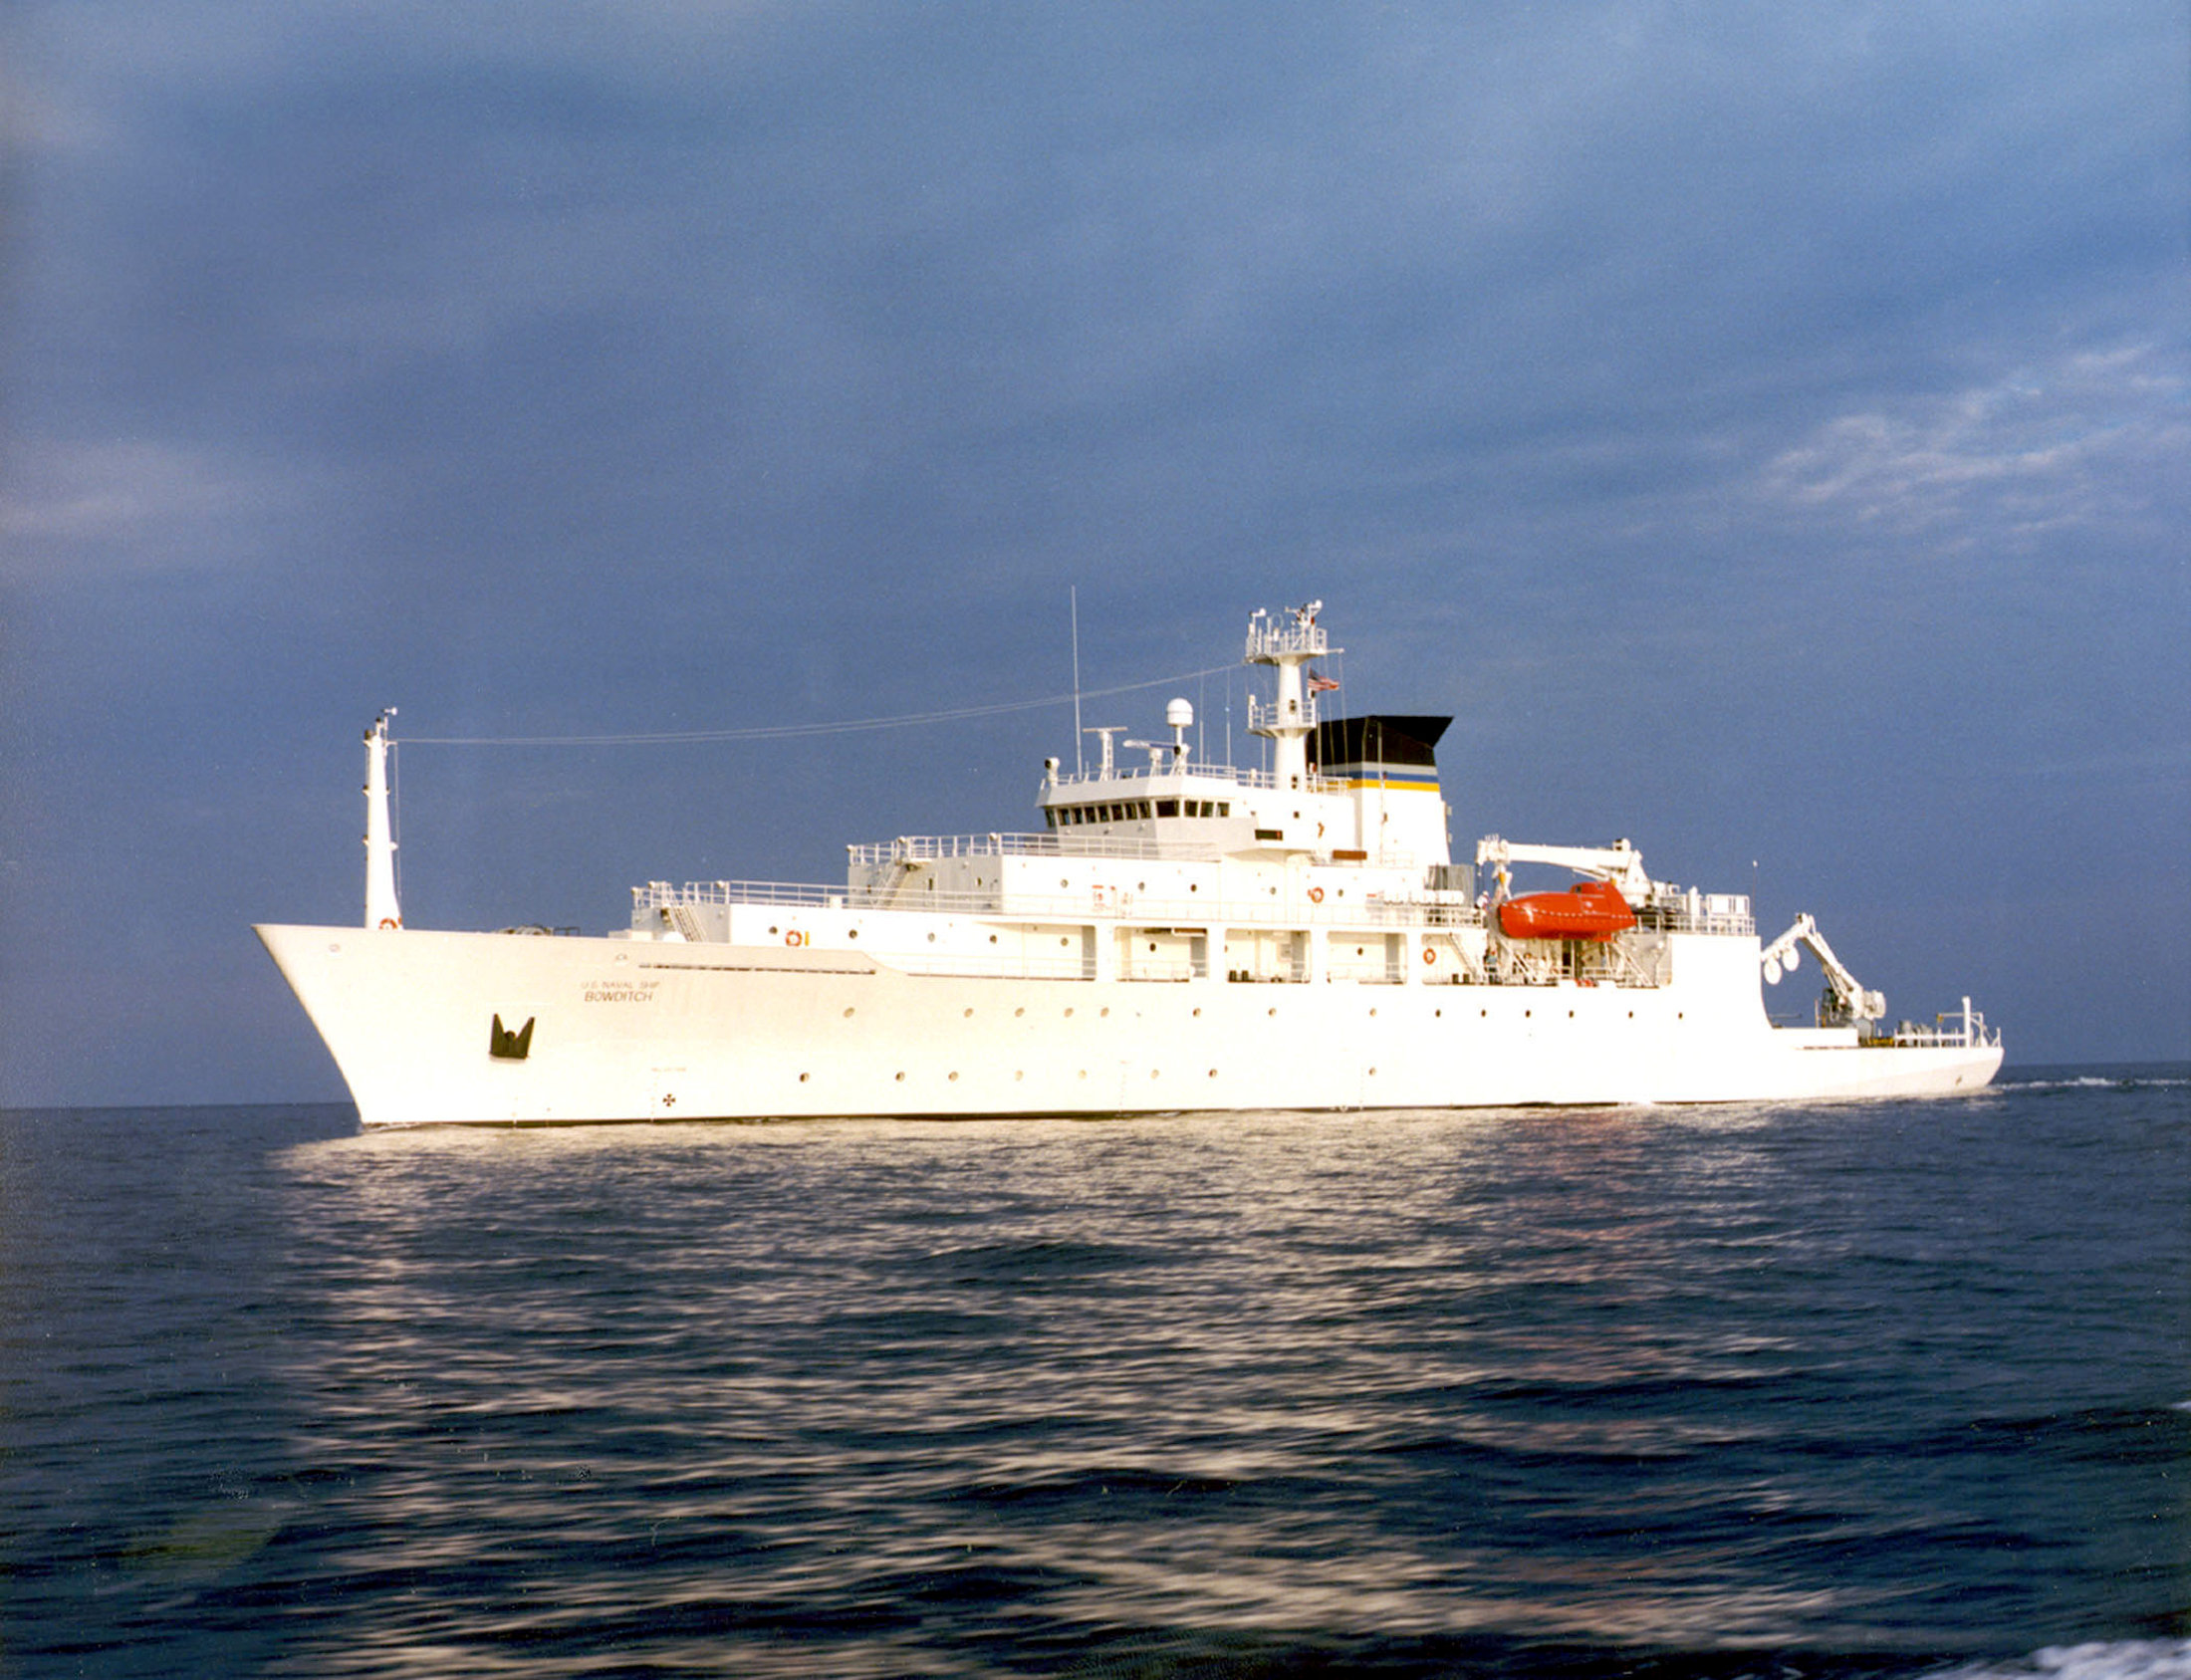 USNS Bowditch on Sept. 20, 2002. US Navy Photo